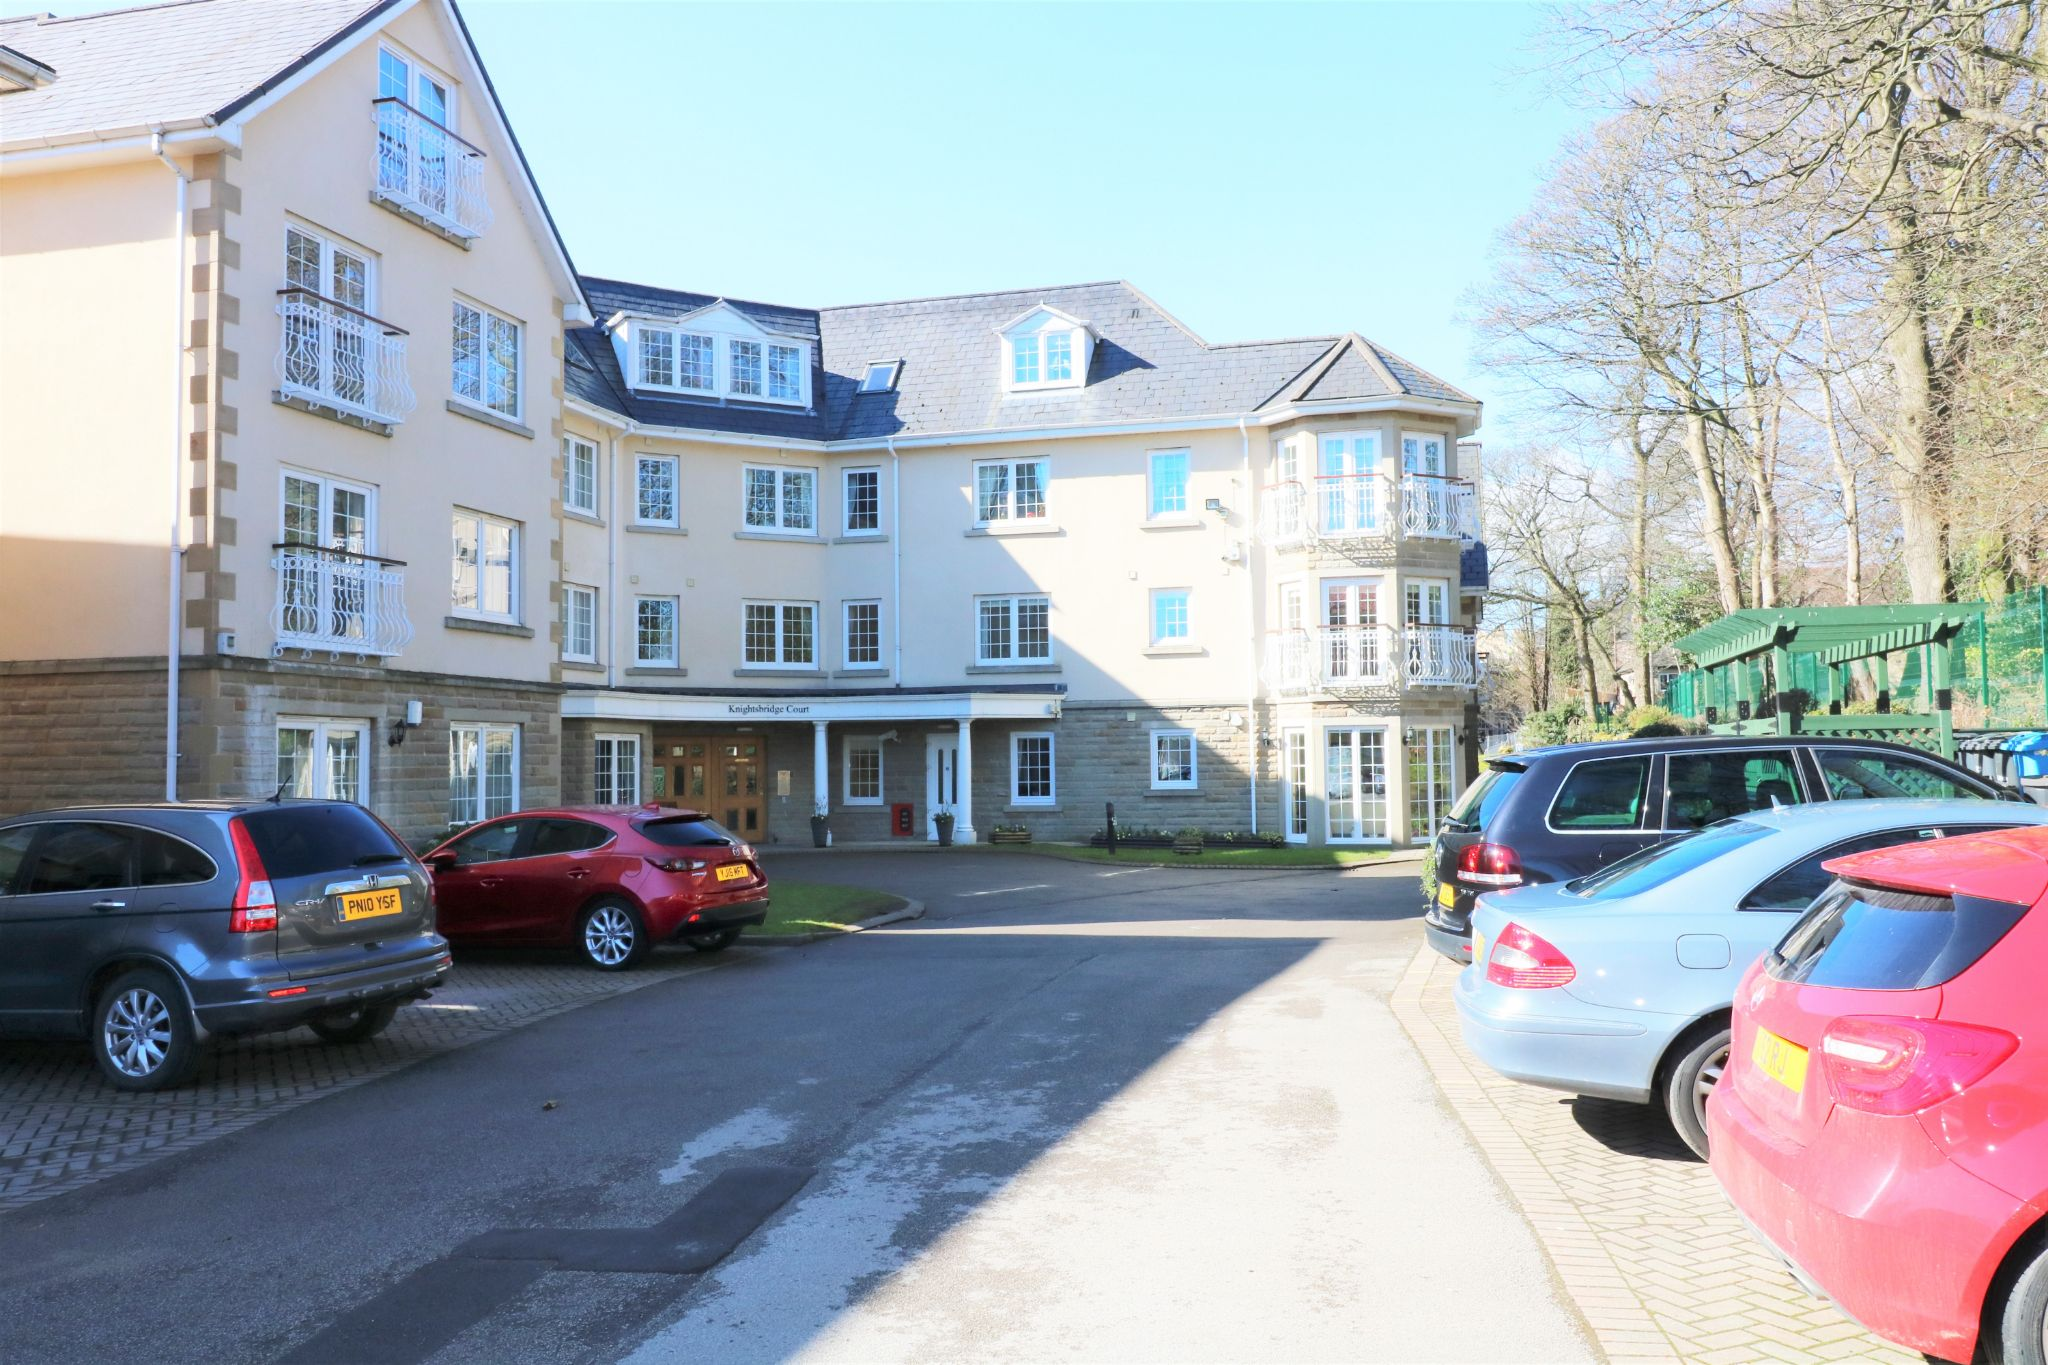 1 Bedroom Penthouse Flat/apartment For Sale - Photograph 2